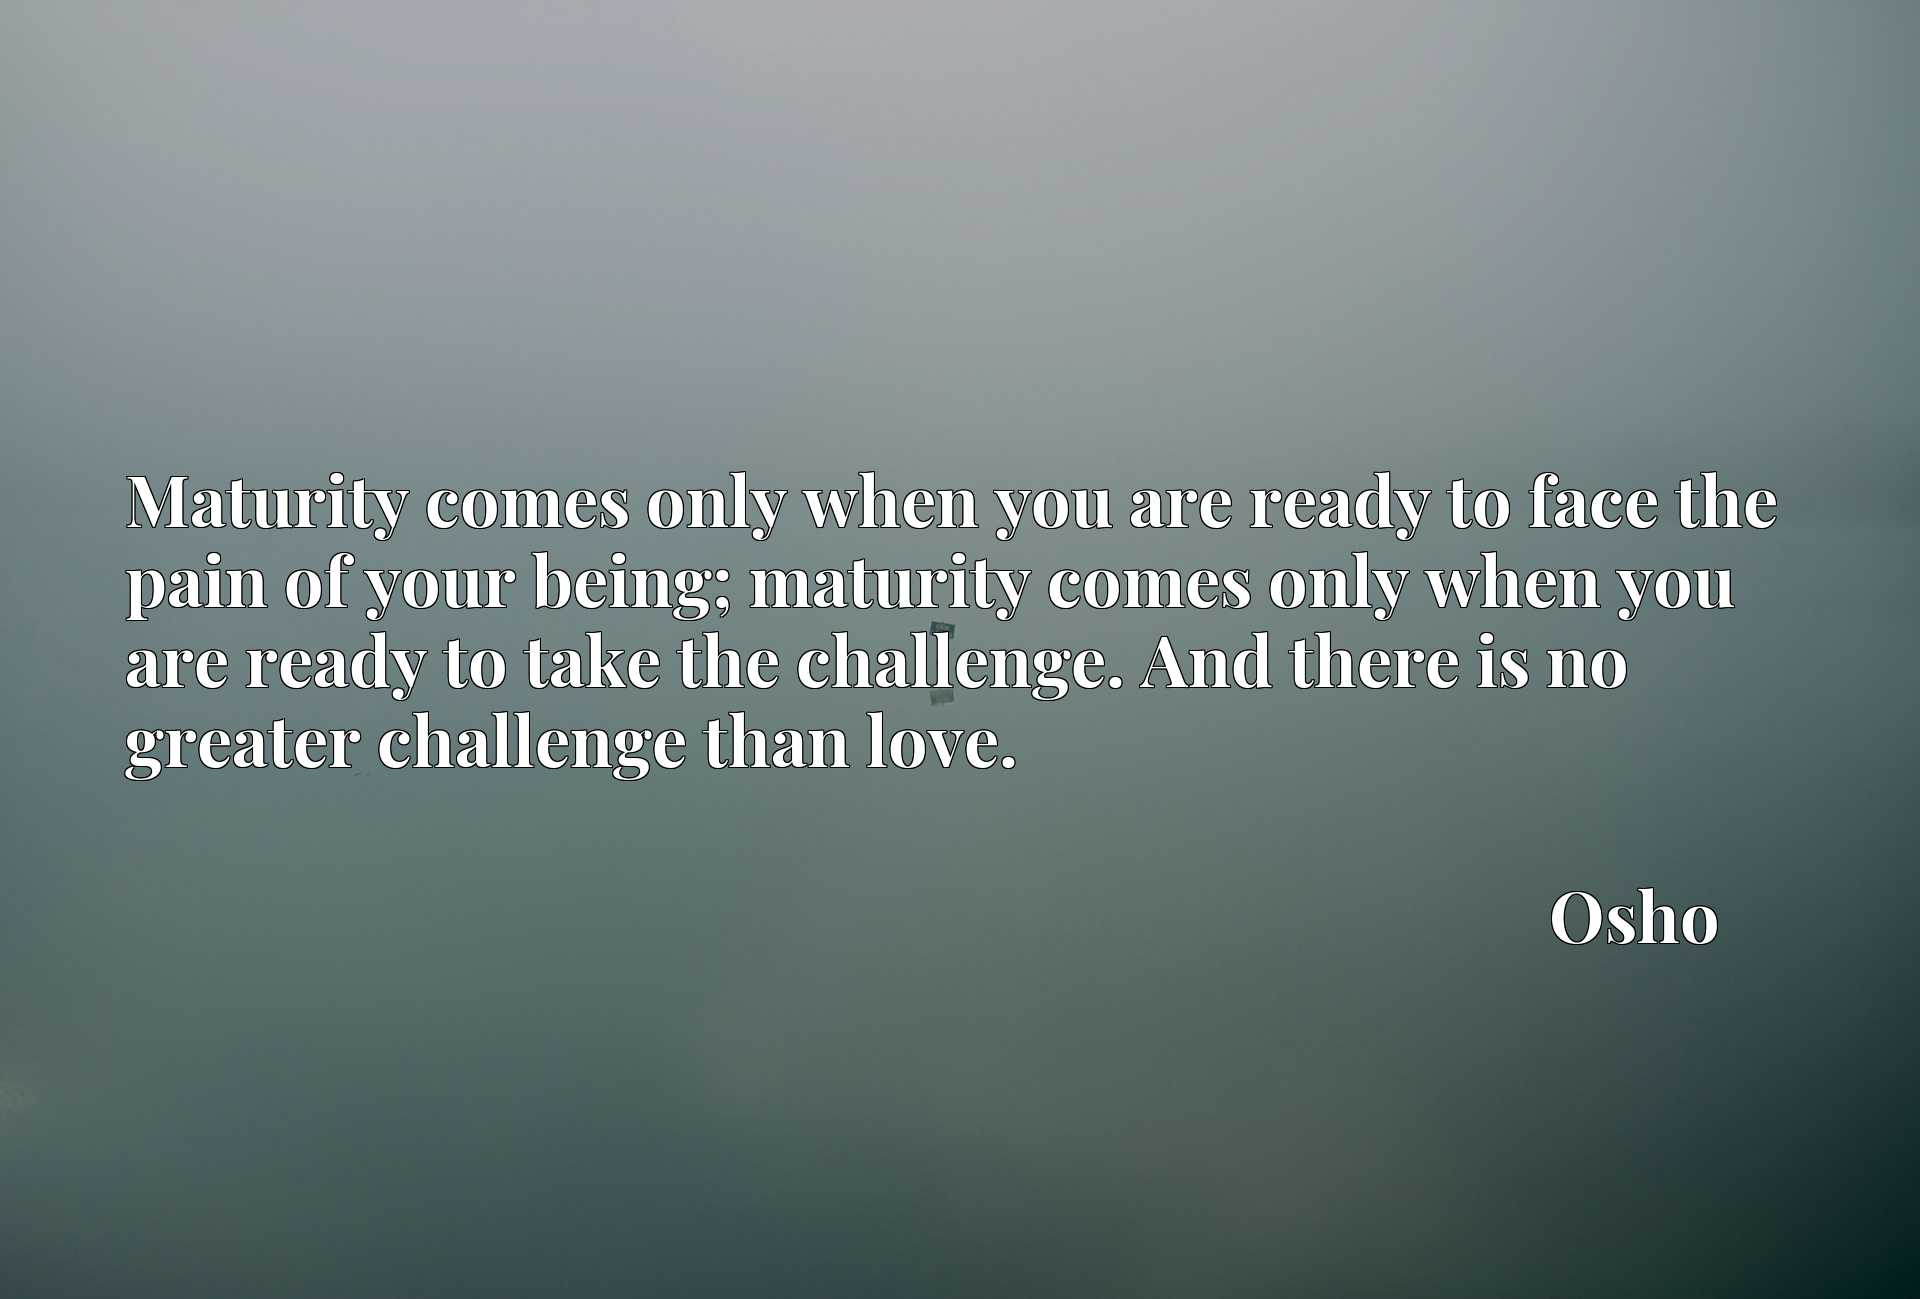 Maturity comes only when you are ready to face the pain of your being; maturity comes only when you are ready to take the challenge. And there is no greater challenge than love.